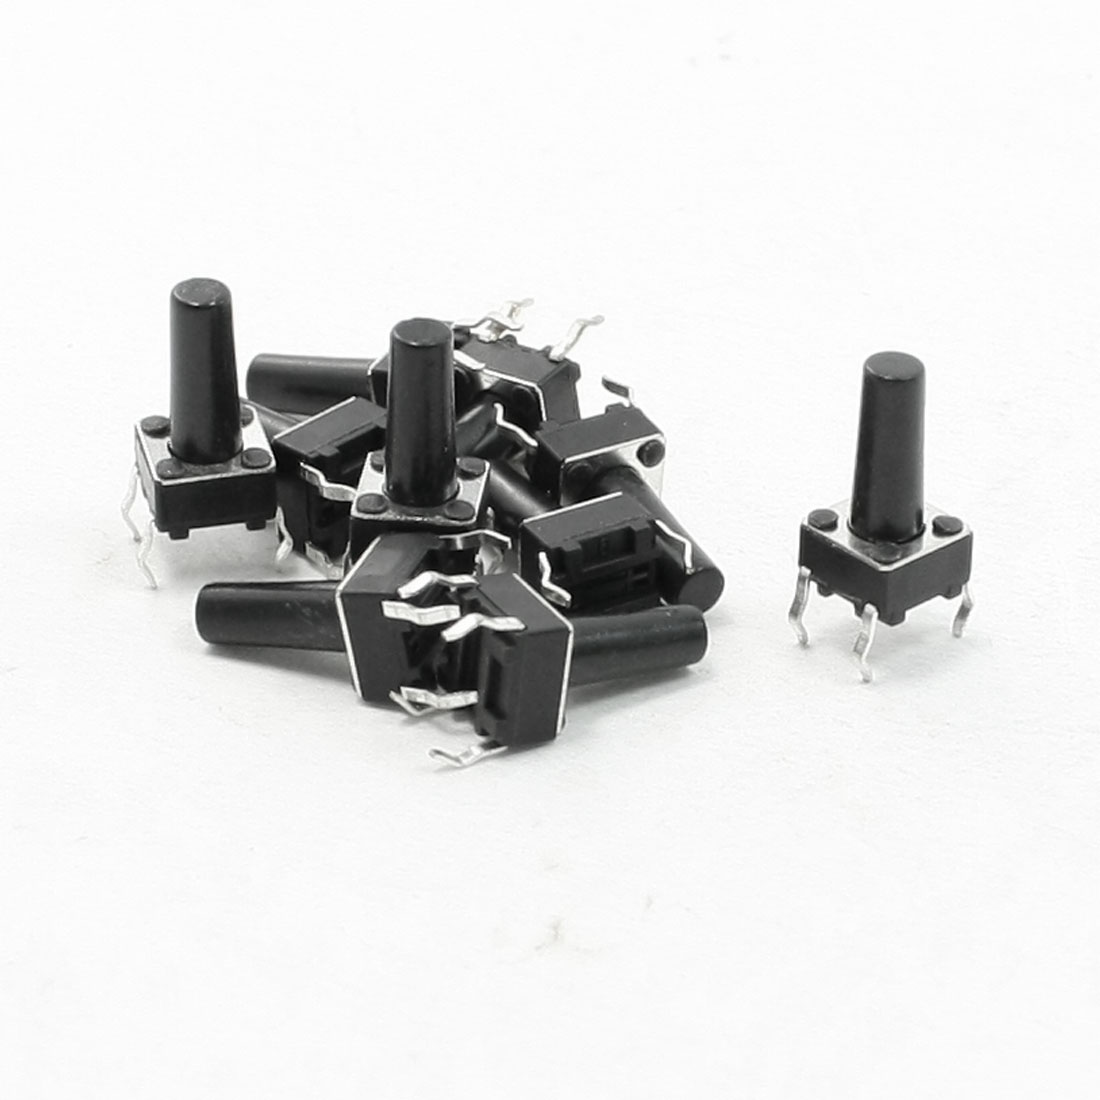 10 Pcs 6x6x12mm 4 Pins DIP PCB Momentary Tactile Tact Push Button Switch